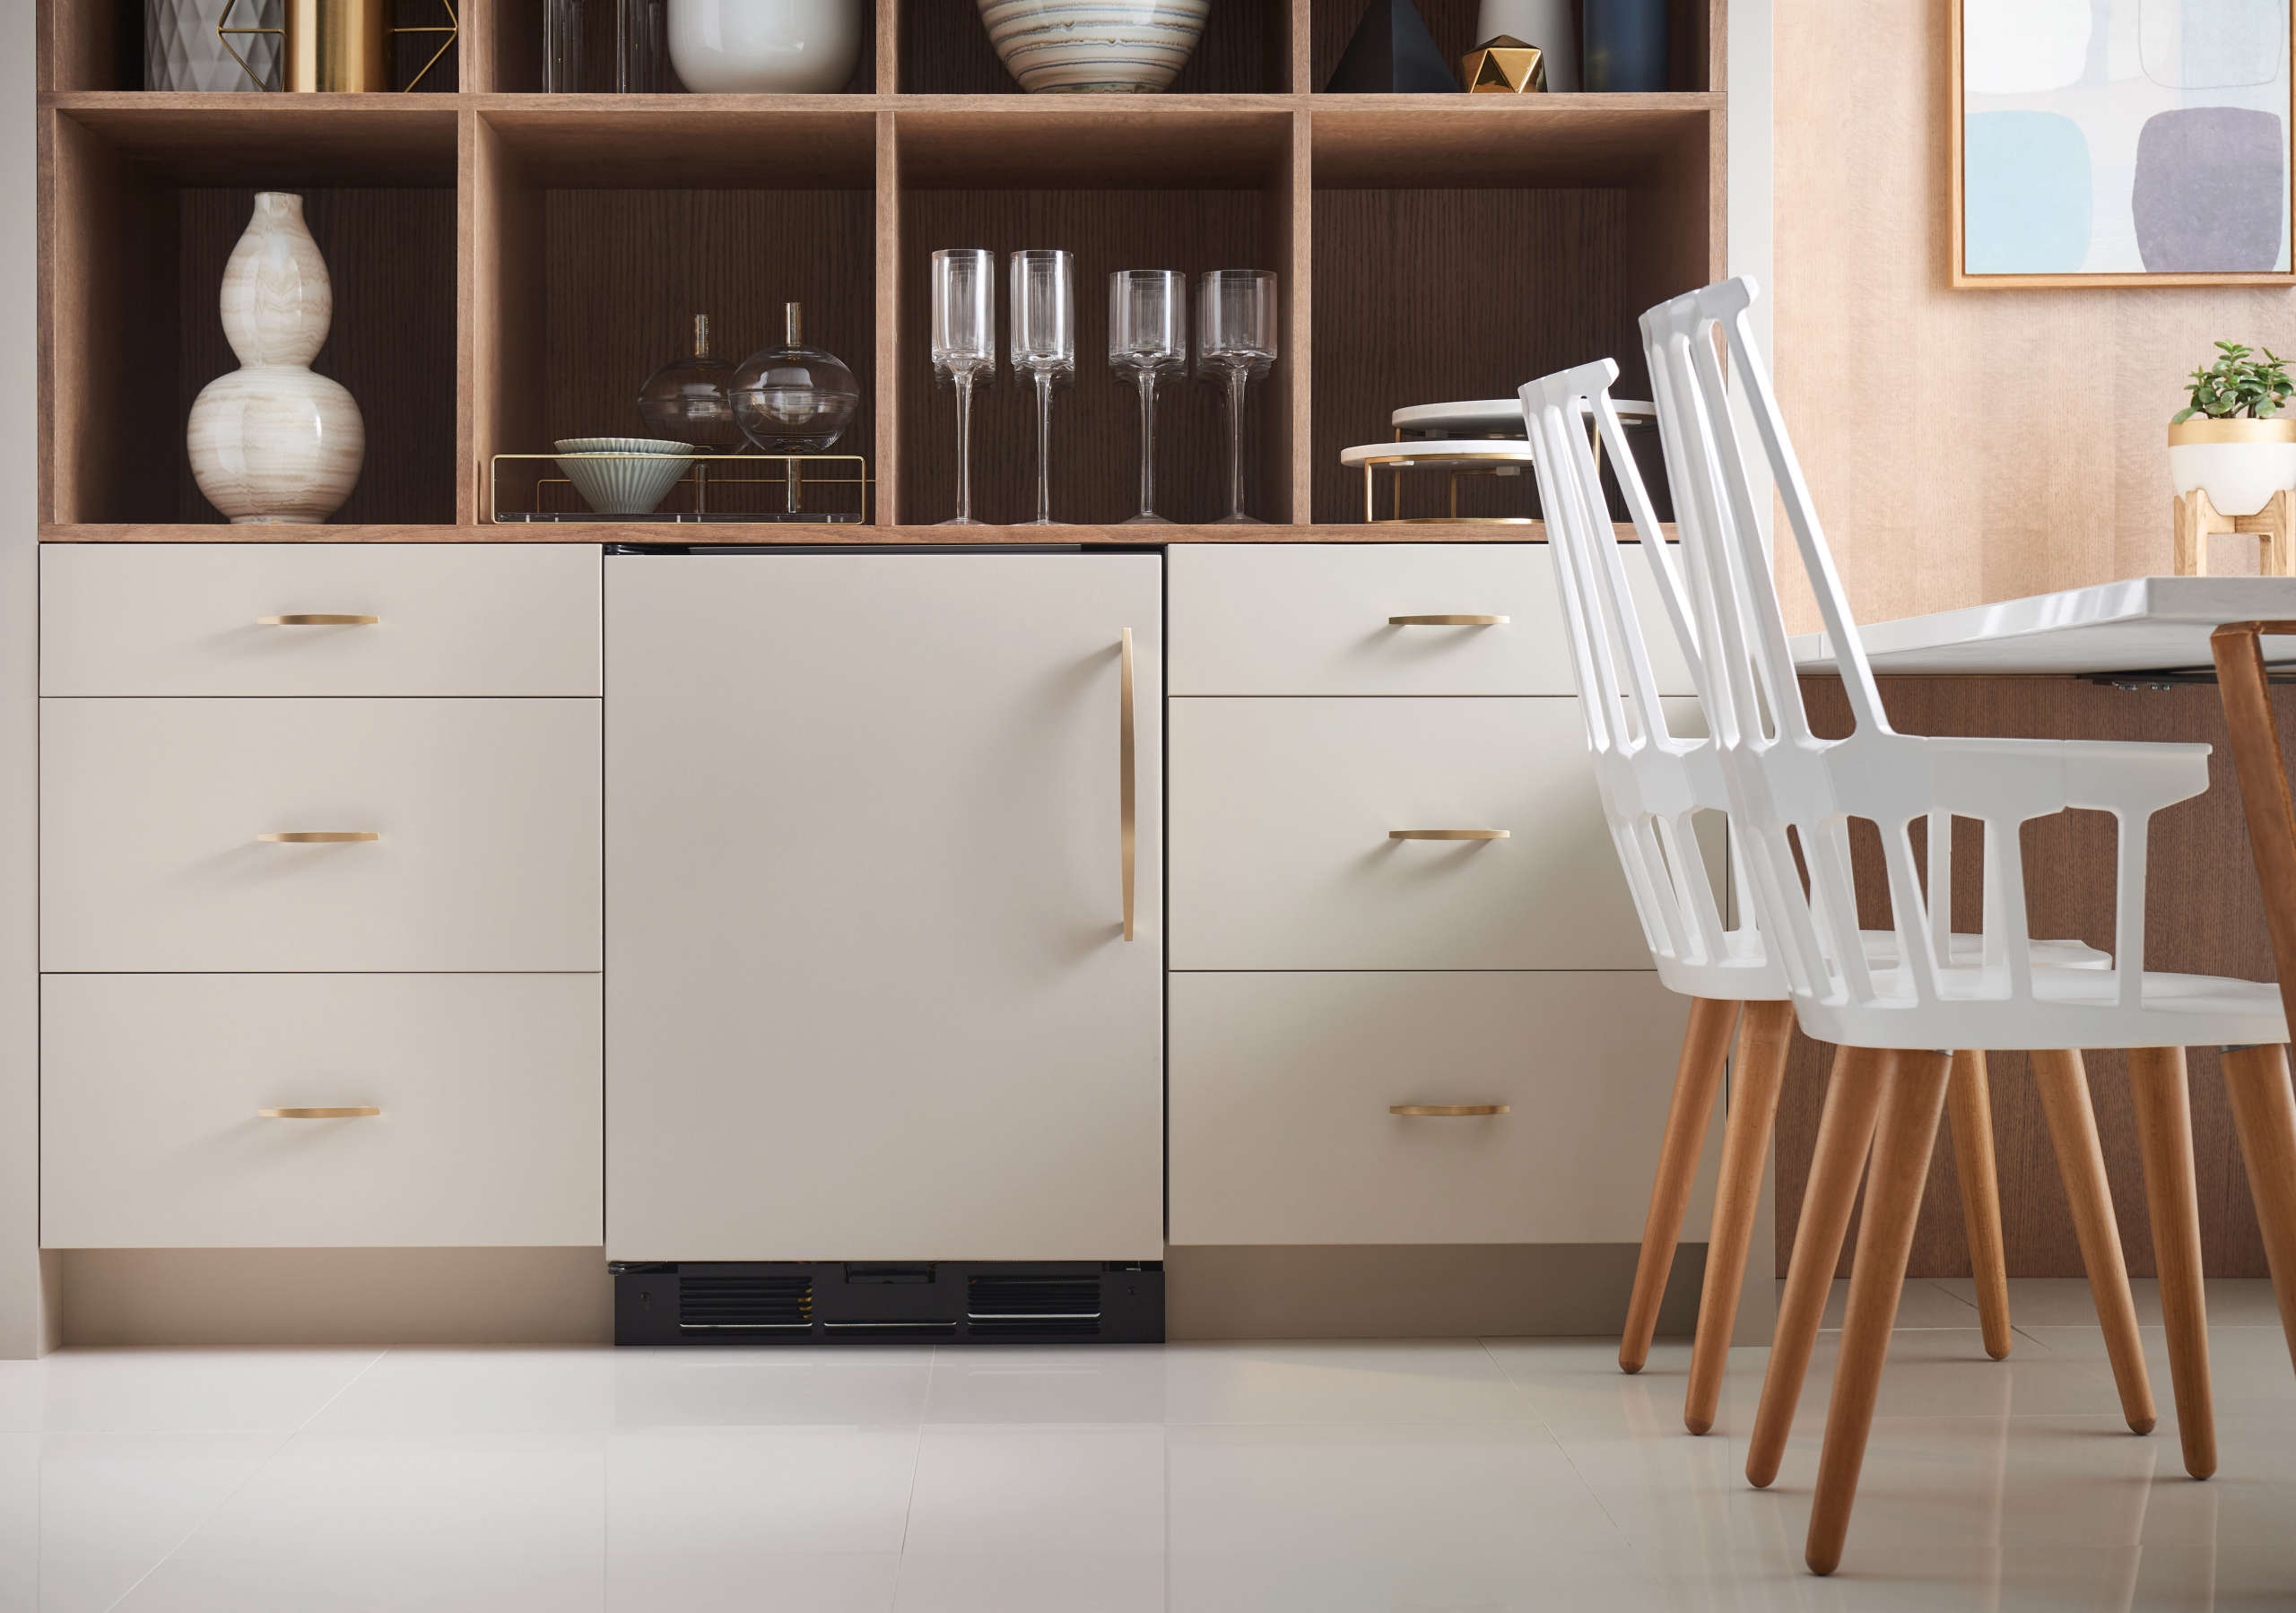 10 Easy Pieces Choosing An Undercounter Refrigerator The Subzero \24 Inch Panel Ready Undercounter Refrigerator is \$\2,\255 at Subzero dealers.